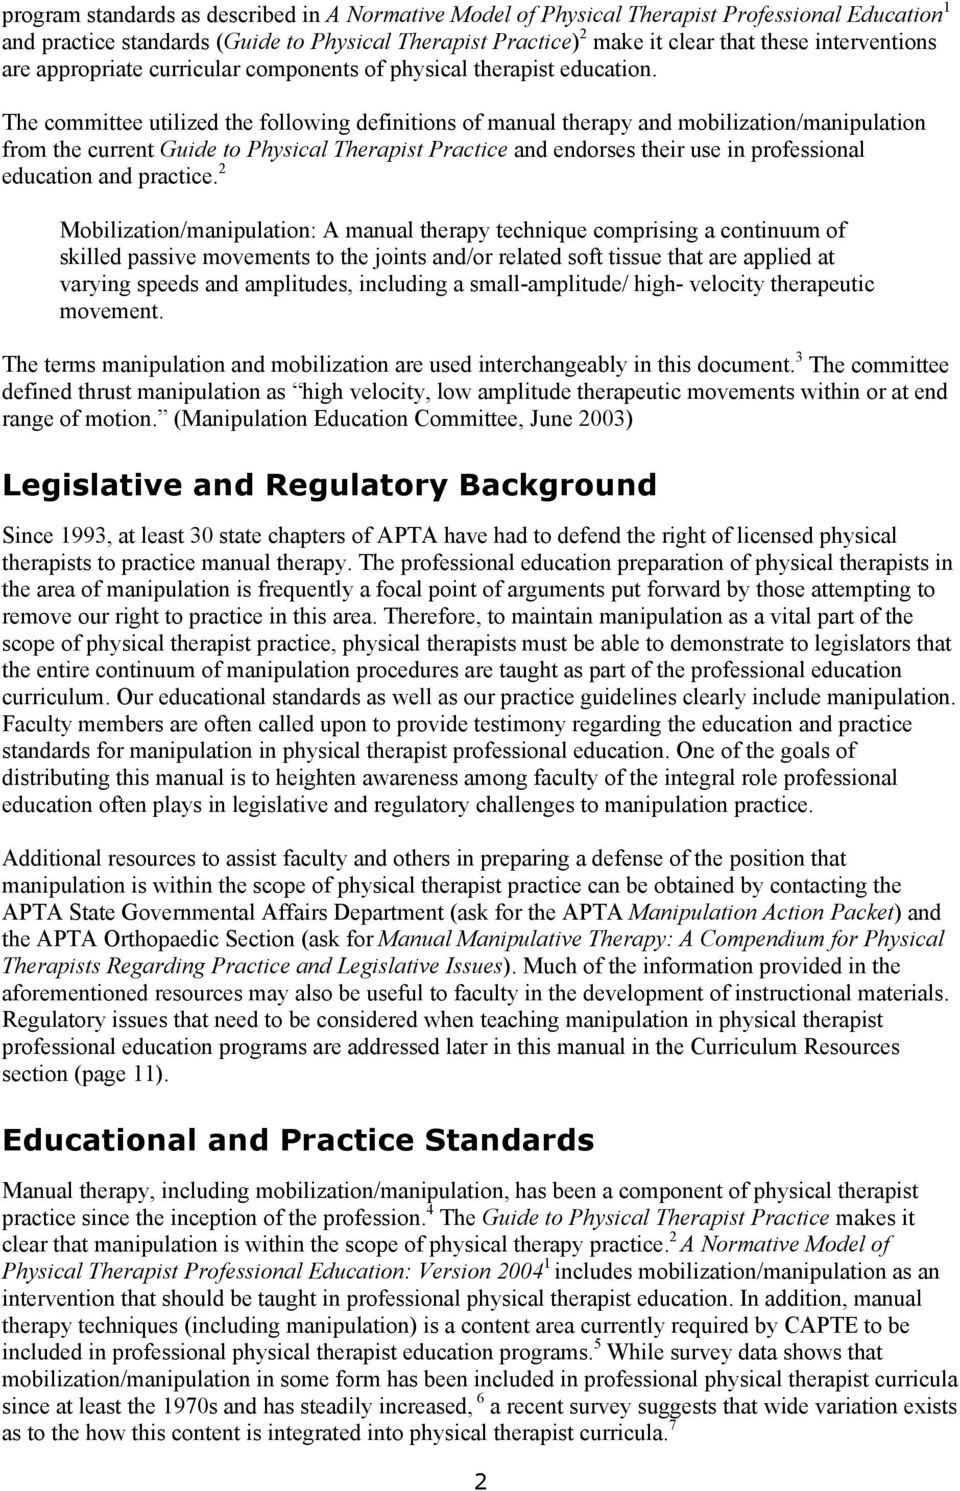 The committee utilized the following definitions of manual therapy and mobilization/manipulation from the current Guide to Physical Therapist Practice and endorses their use in professional education